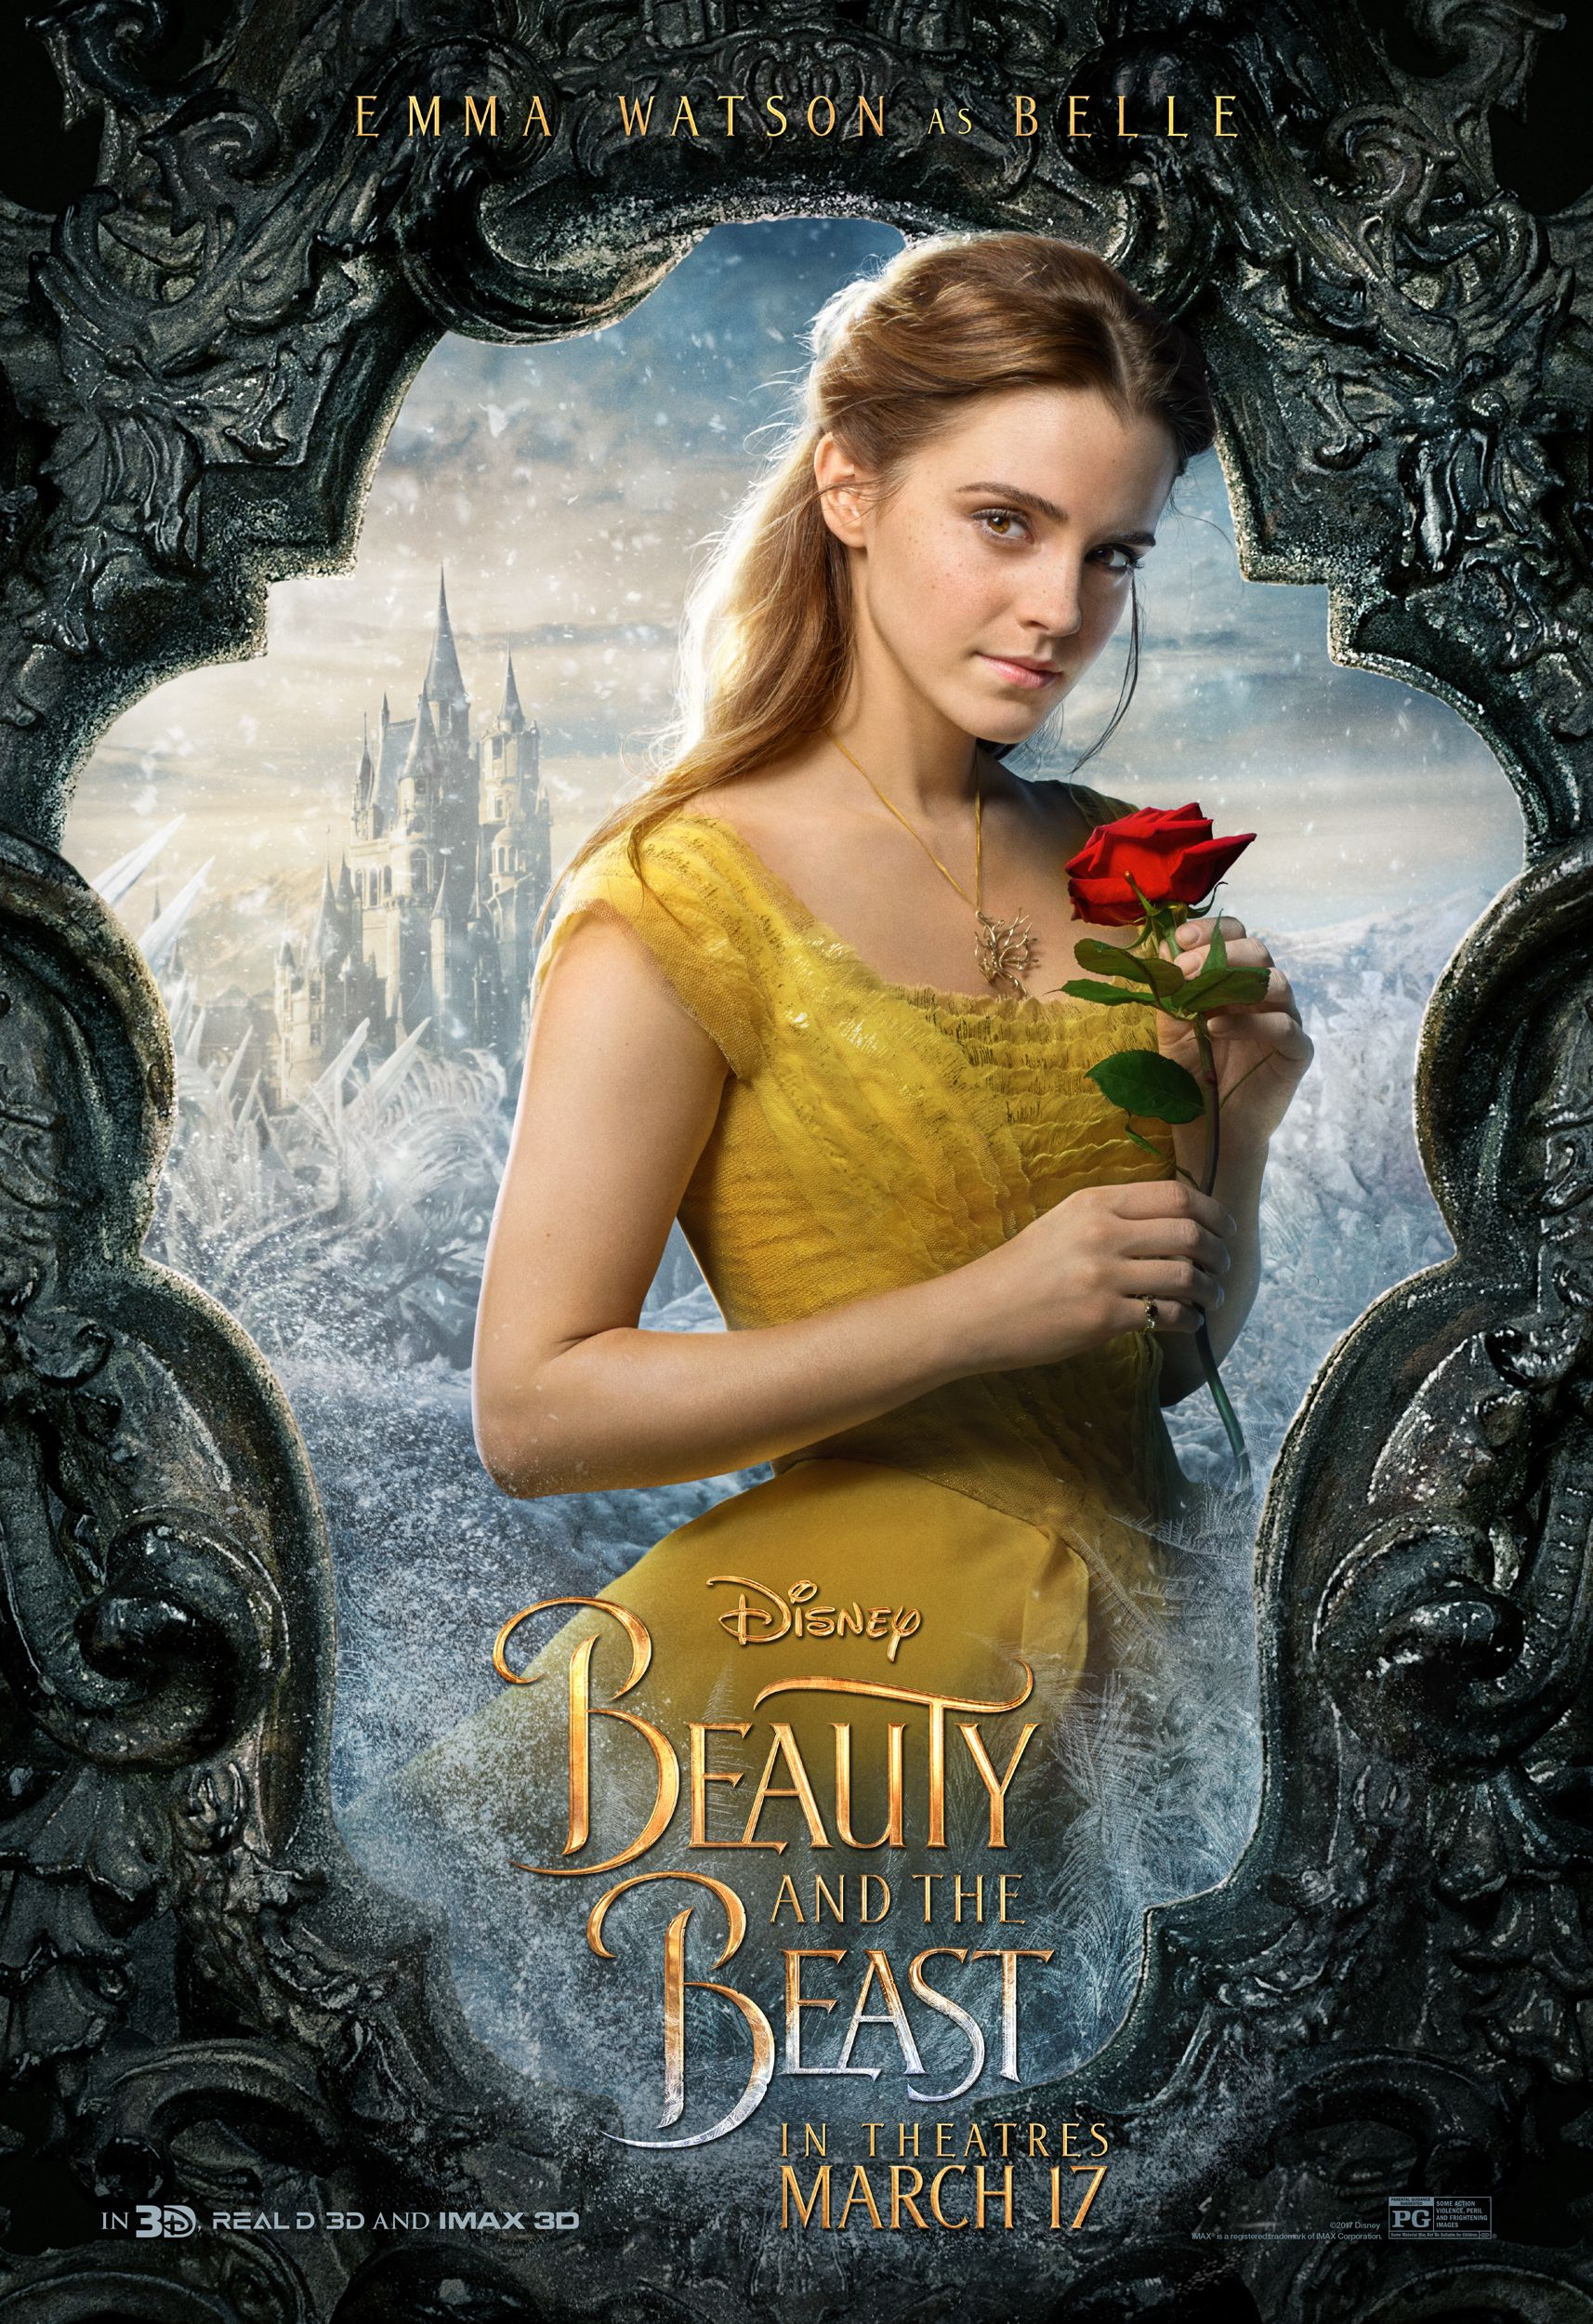 What The Beauty And The Beast Cast Looks Like In Character Emma